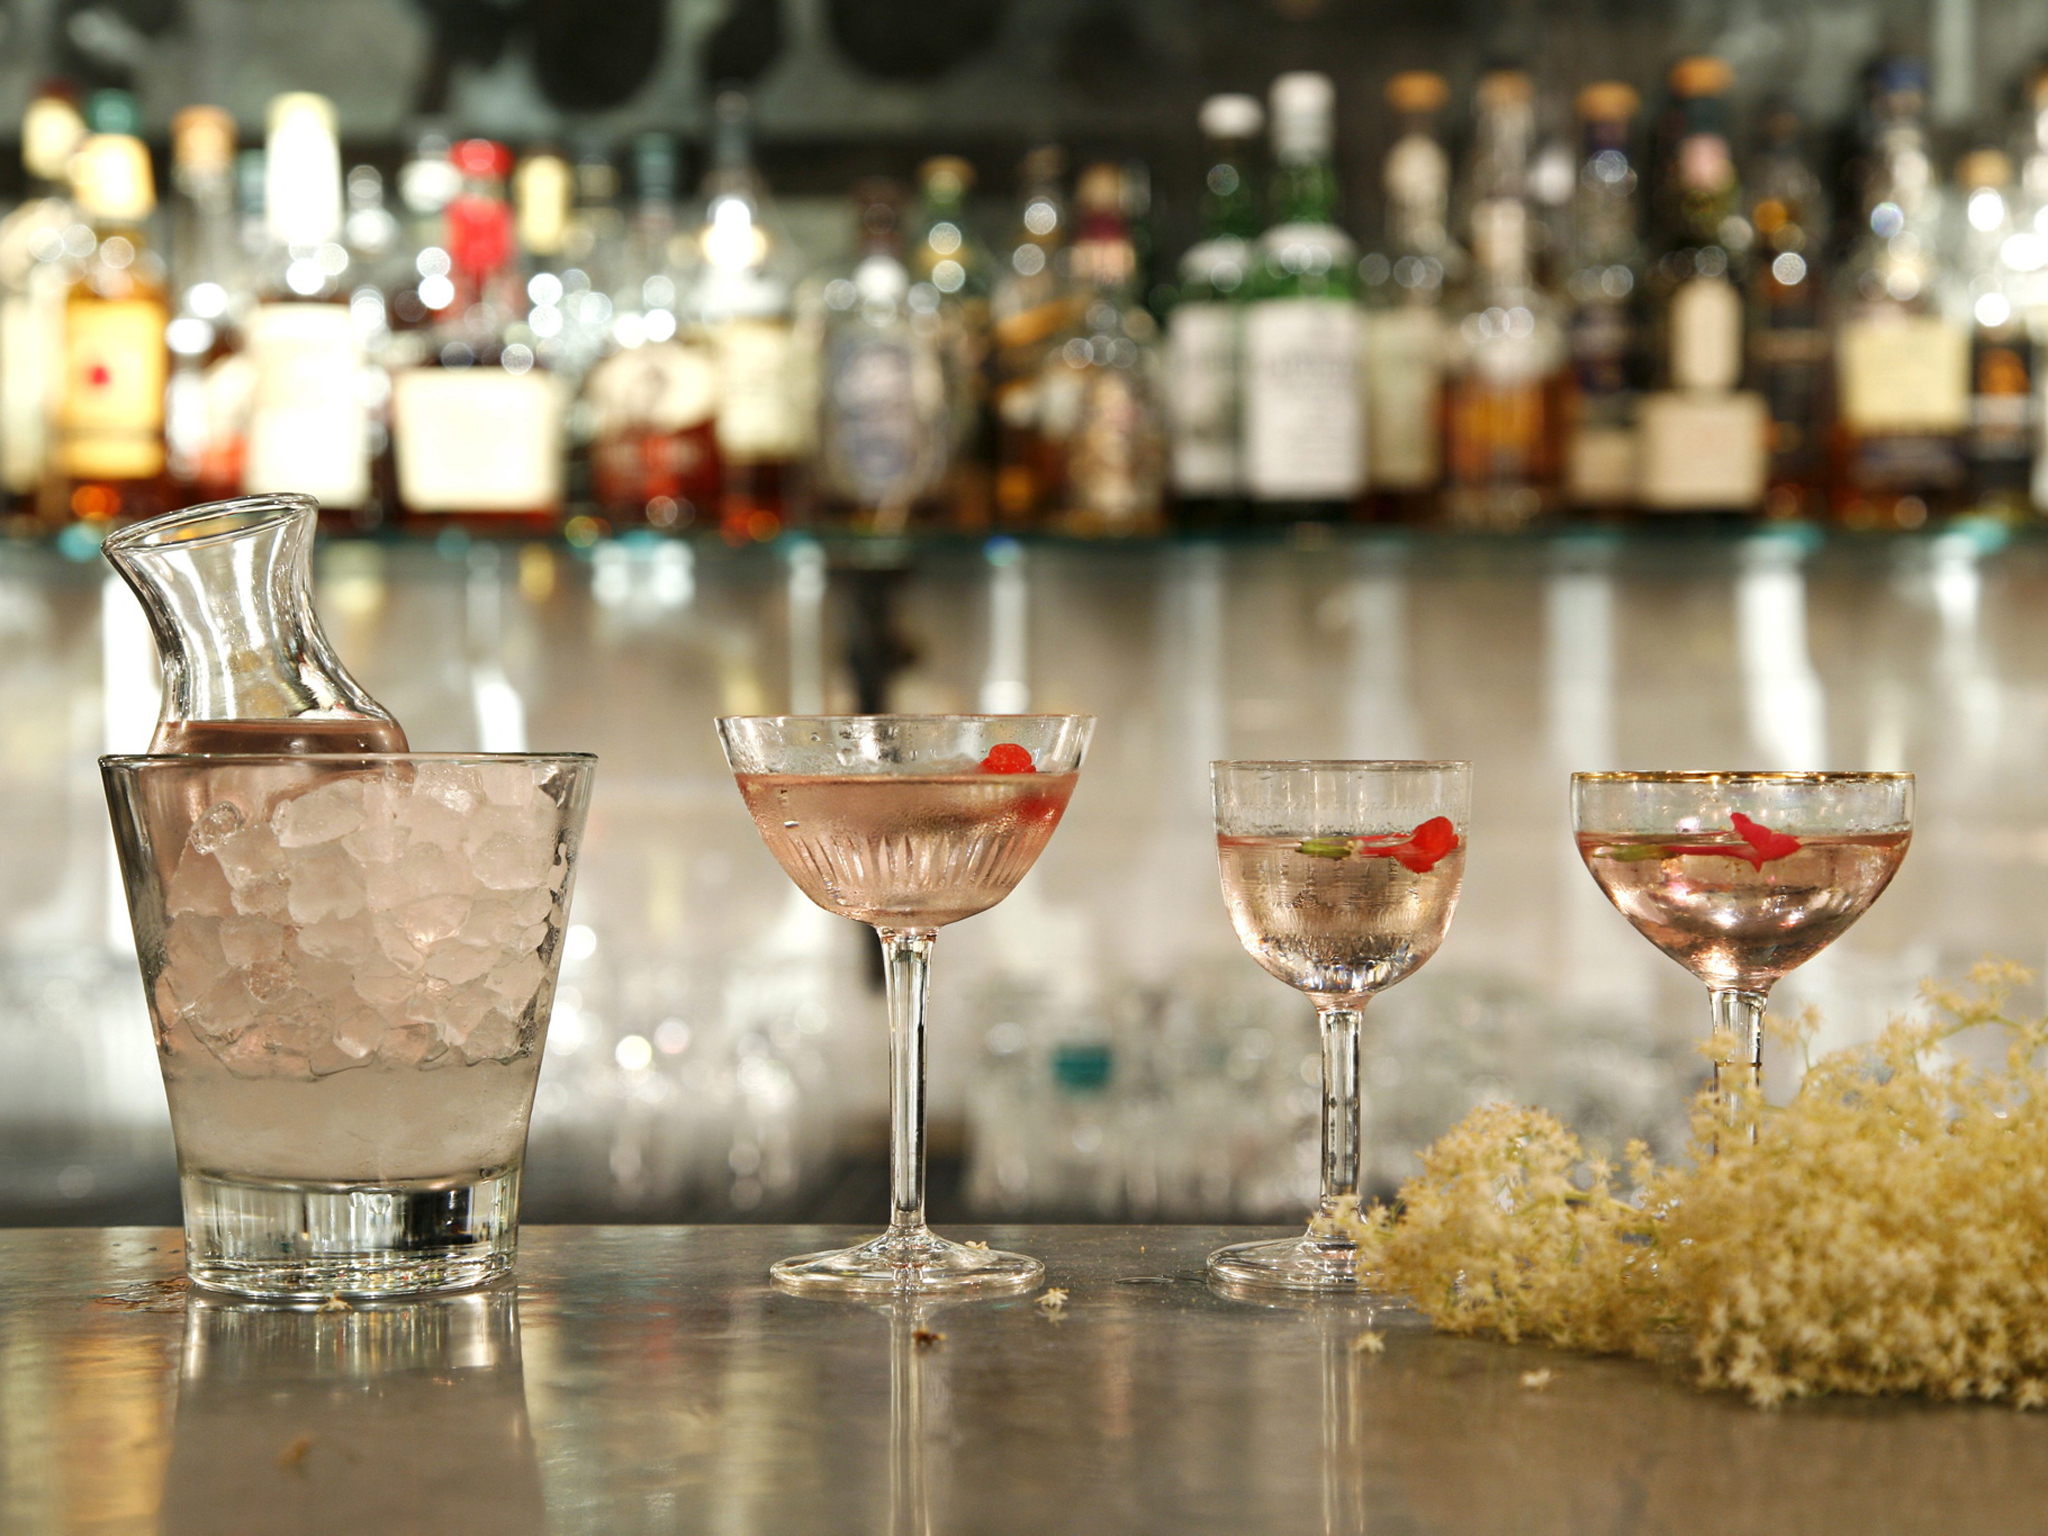 The 50 best cocktail bars in London, Mark's Bar